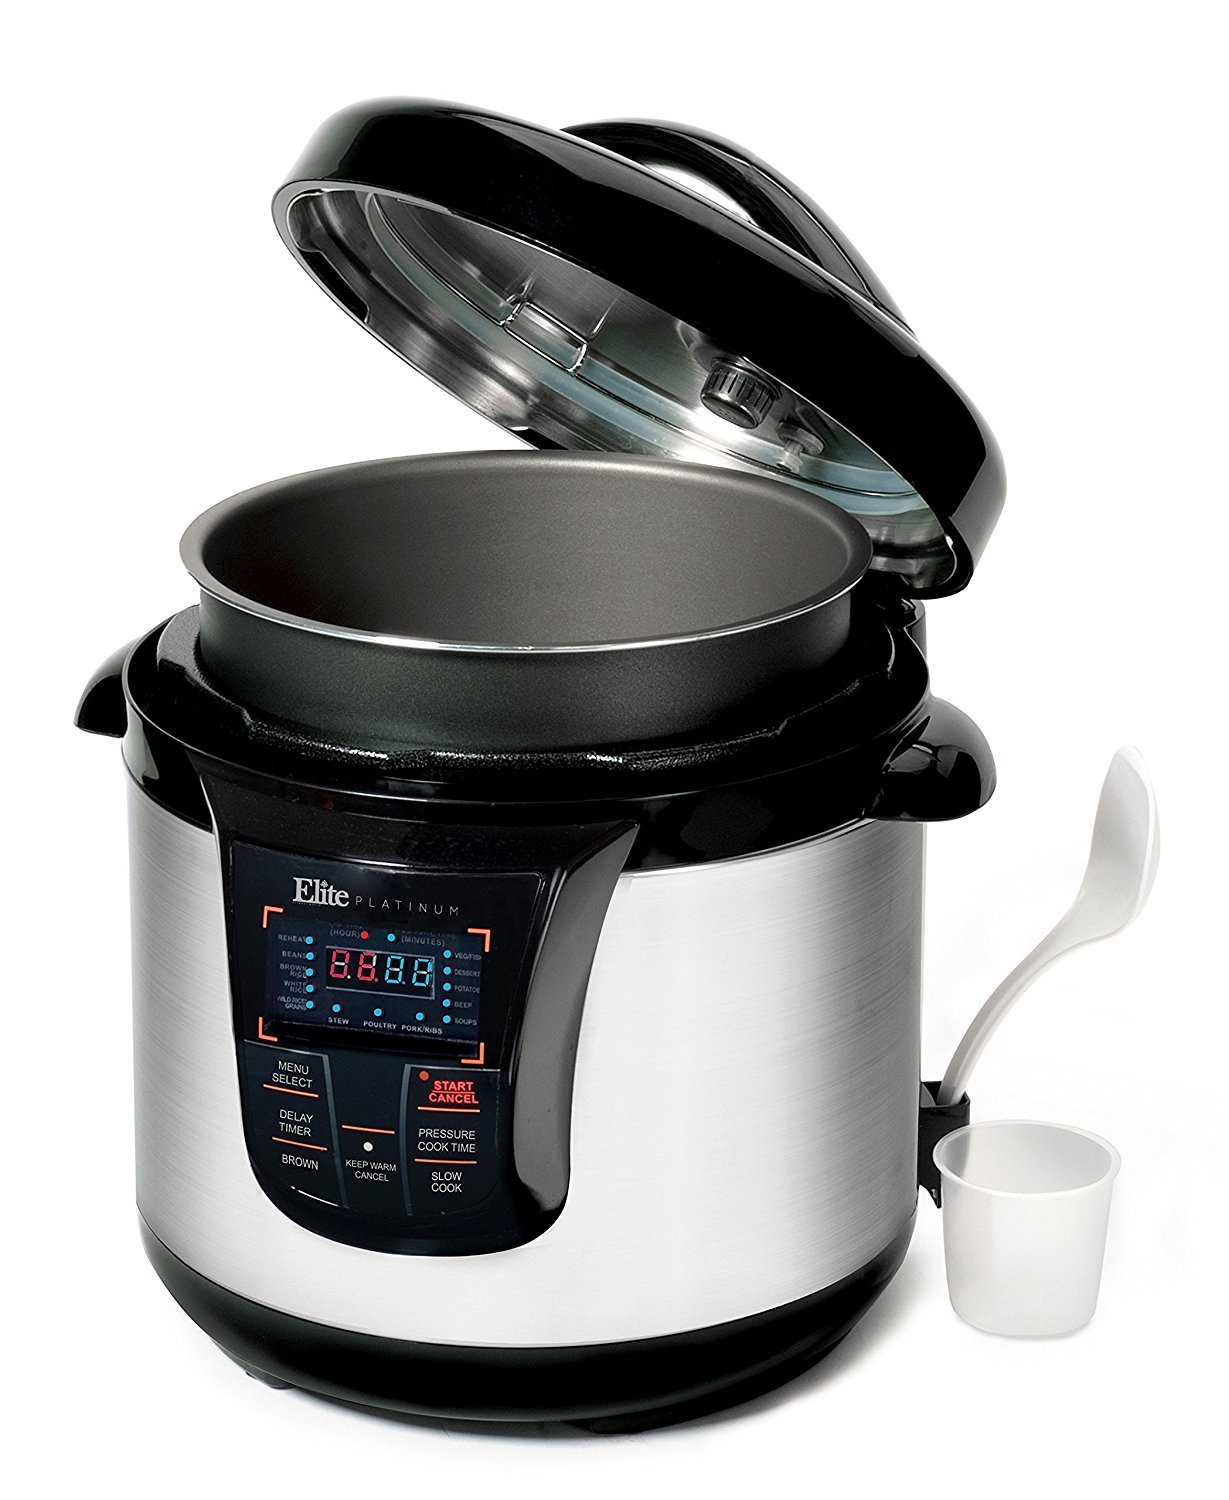 Elite Platinum 8 Quart 14-in-1 Multi-Use Programmable Pressure Cooker, Slow Cooker, Rice Cooker, Sauté, and Warmer - Black by Maxi-Matic (Image #11)